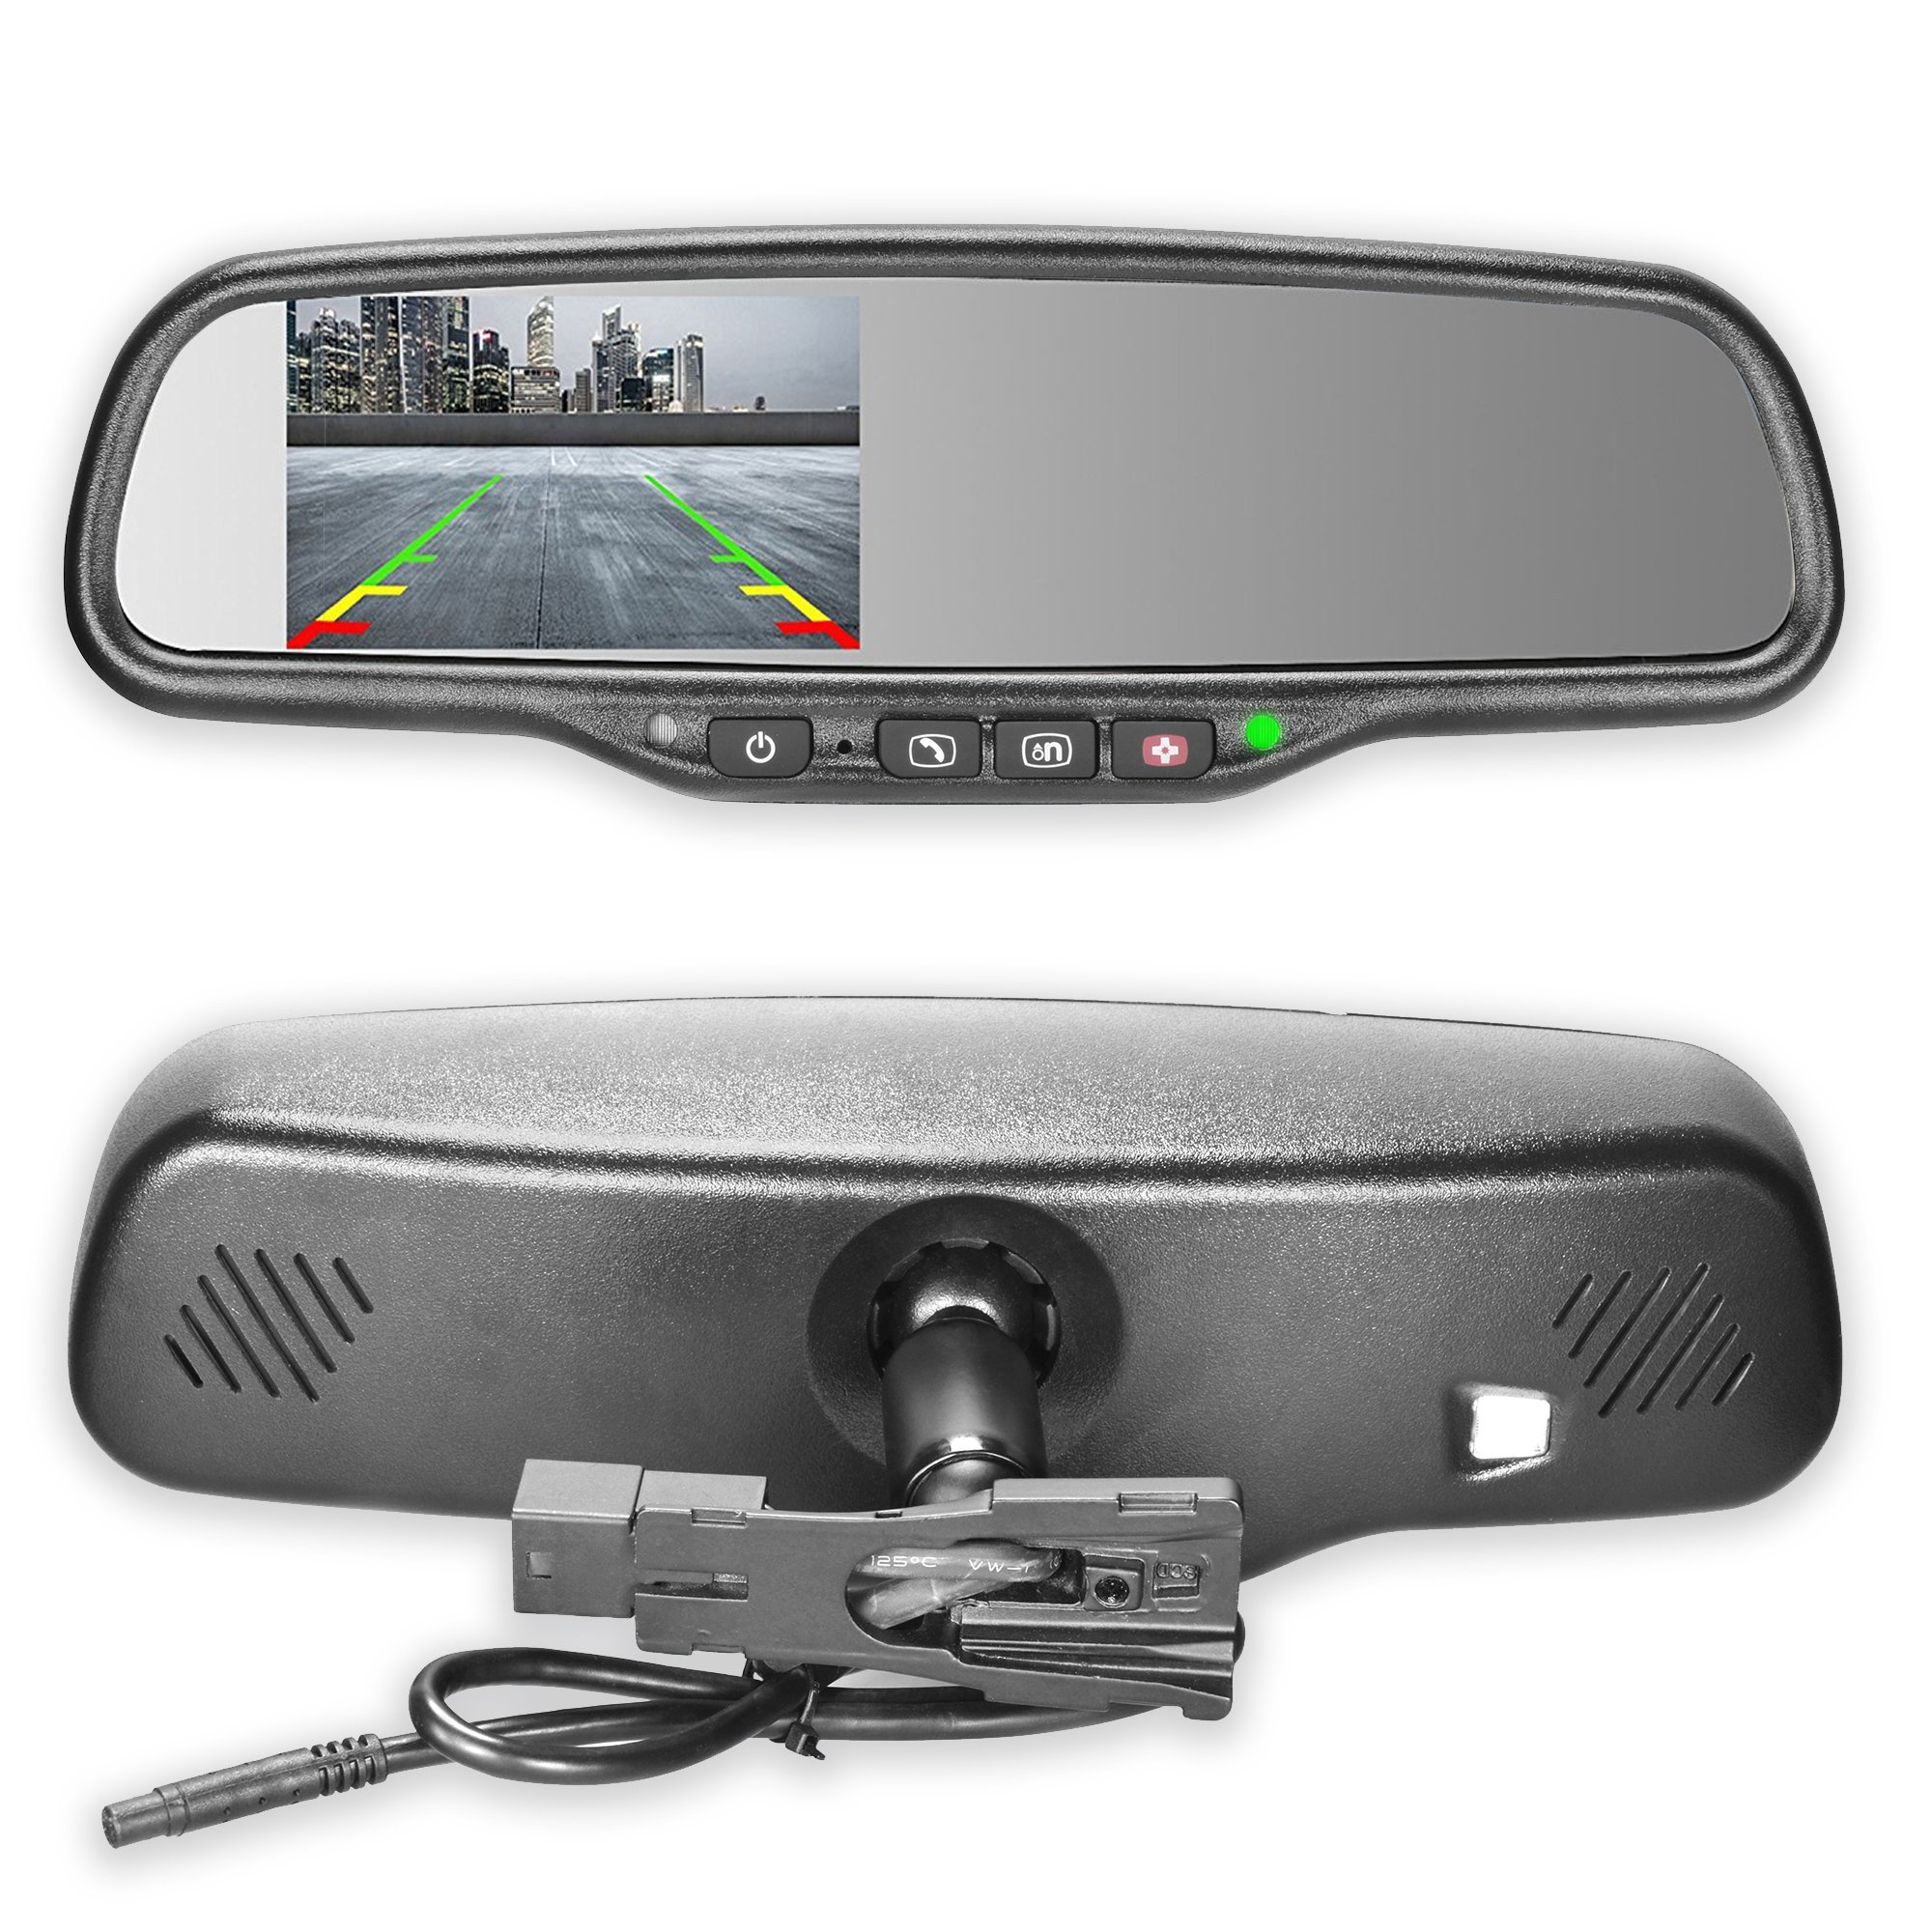 Master Tailgaters OEM Rear View Mirror with 4.3'' Auto Adjusting Ultra Bright LCD and OnStar Buttons(for Backup Cameras) - Connects to Your Existing OnStar Wiring